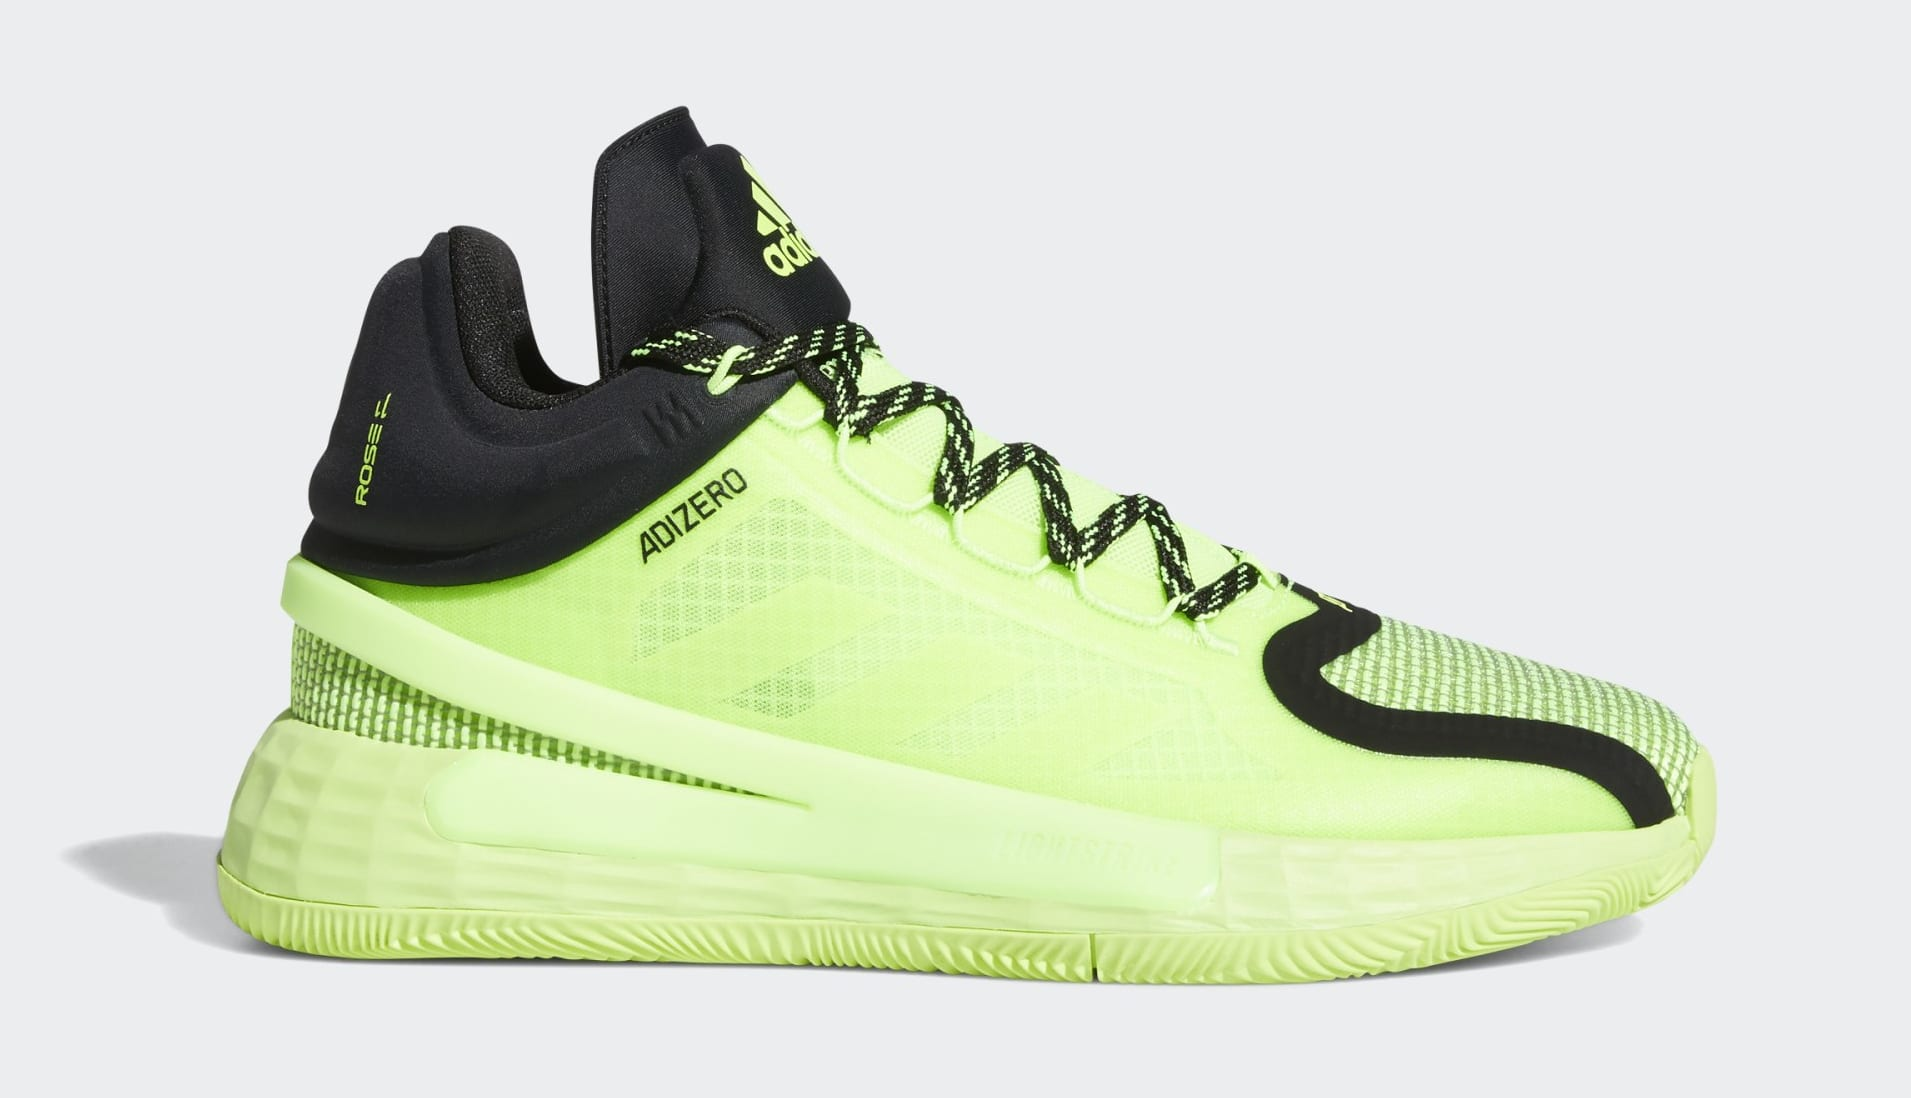 Adidas D Rose 11 'Fast Don't Lie' FU7405 Lateral